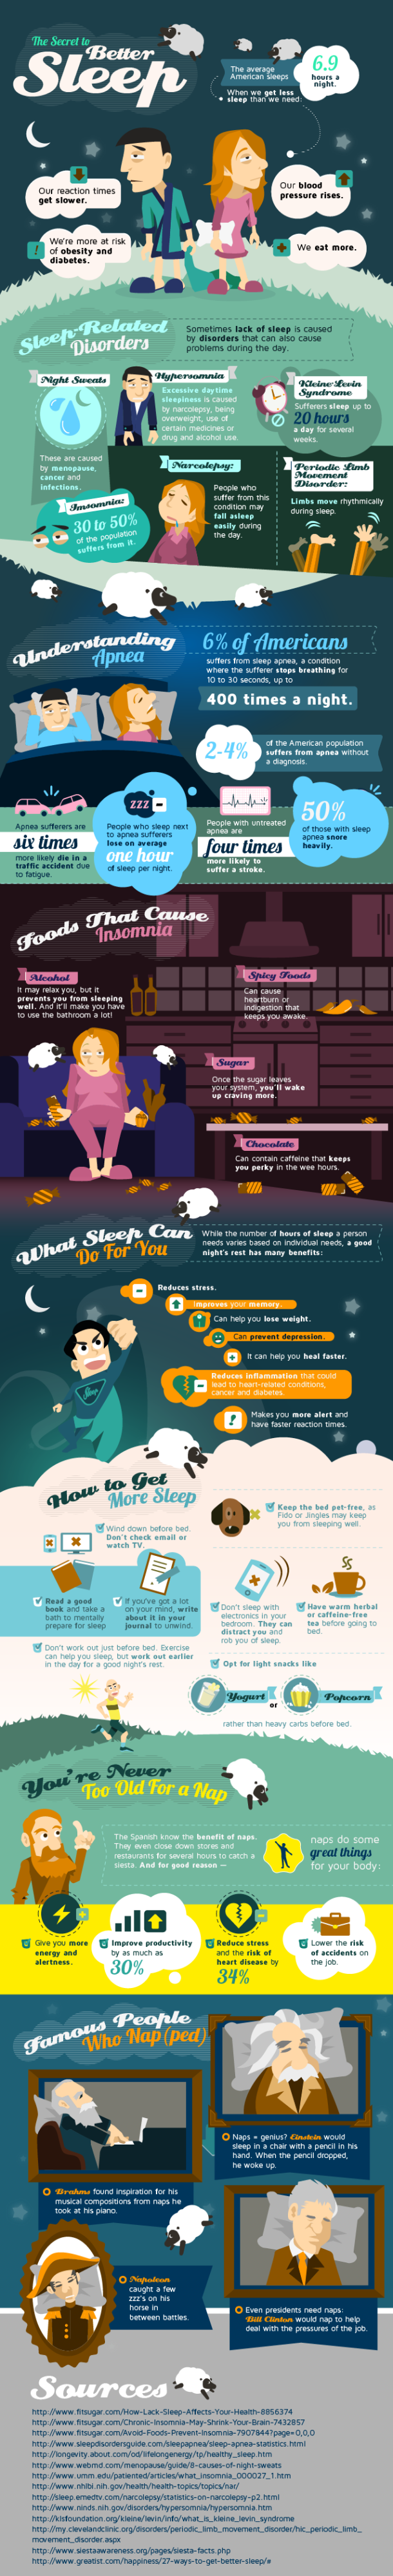 The-Secret-to-Better-Sleep-Infographic1.png.pagespeed.ce.05aMYu6w-c